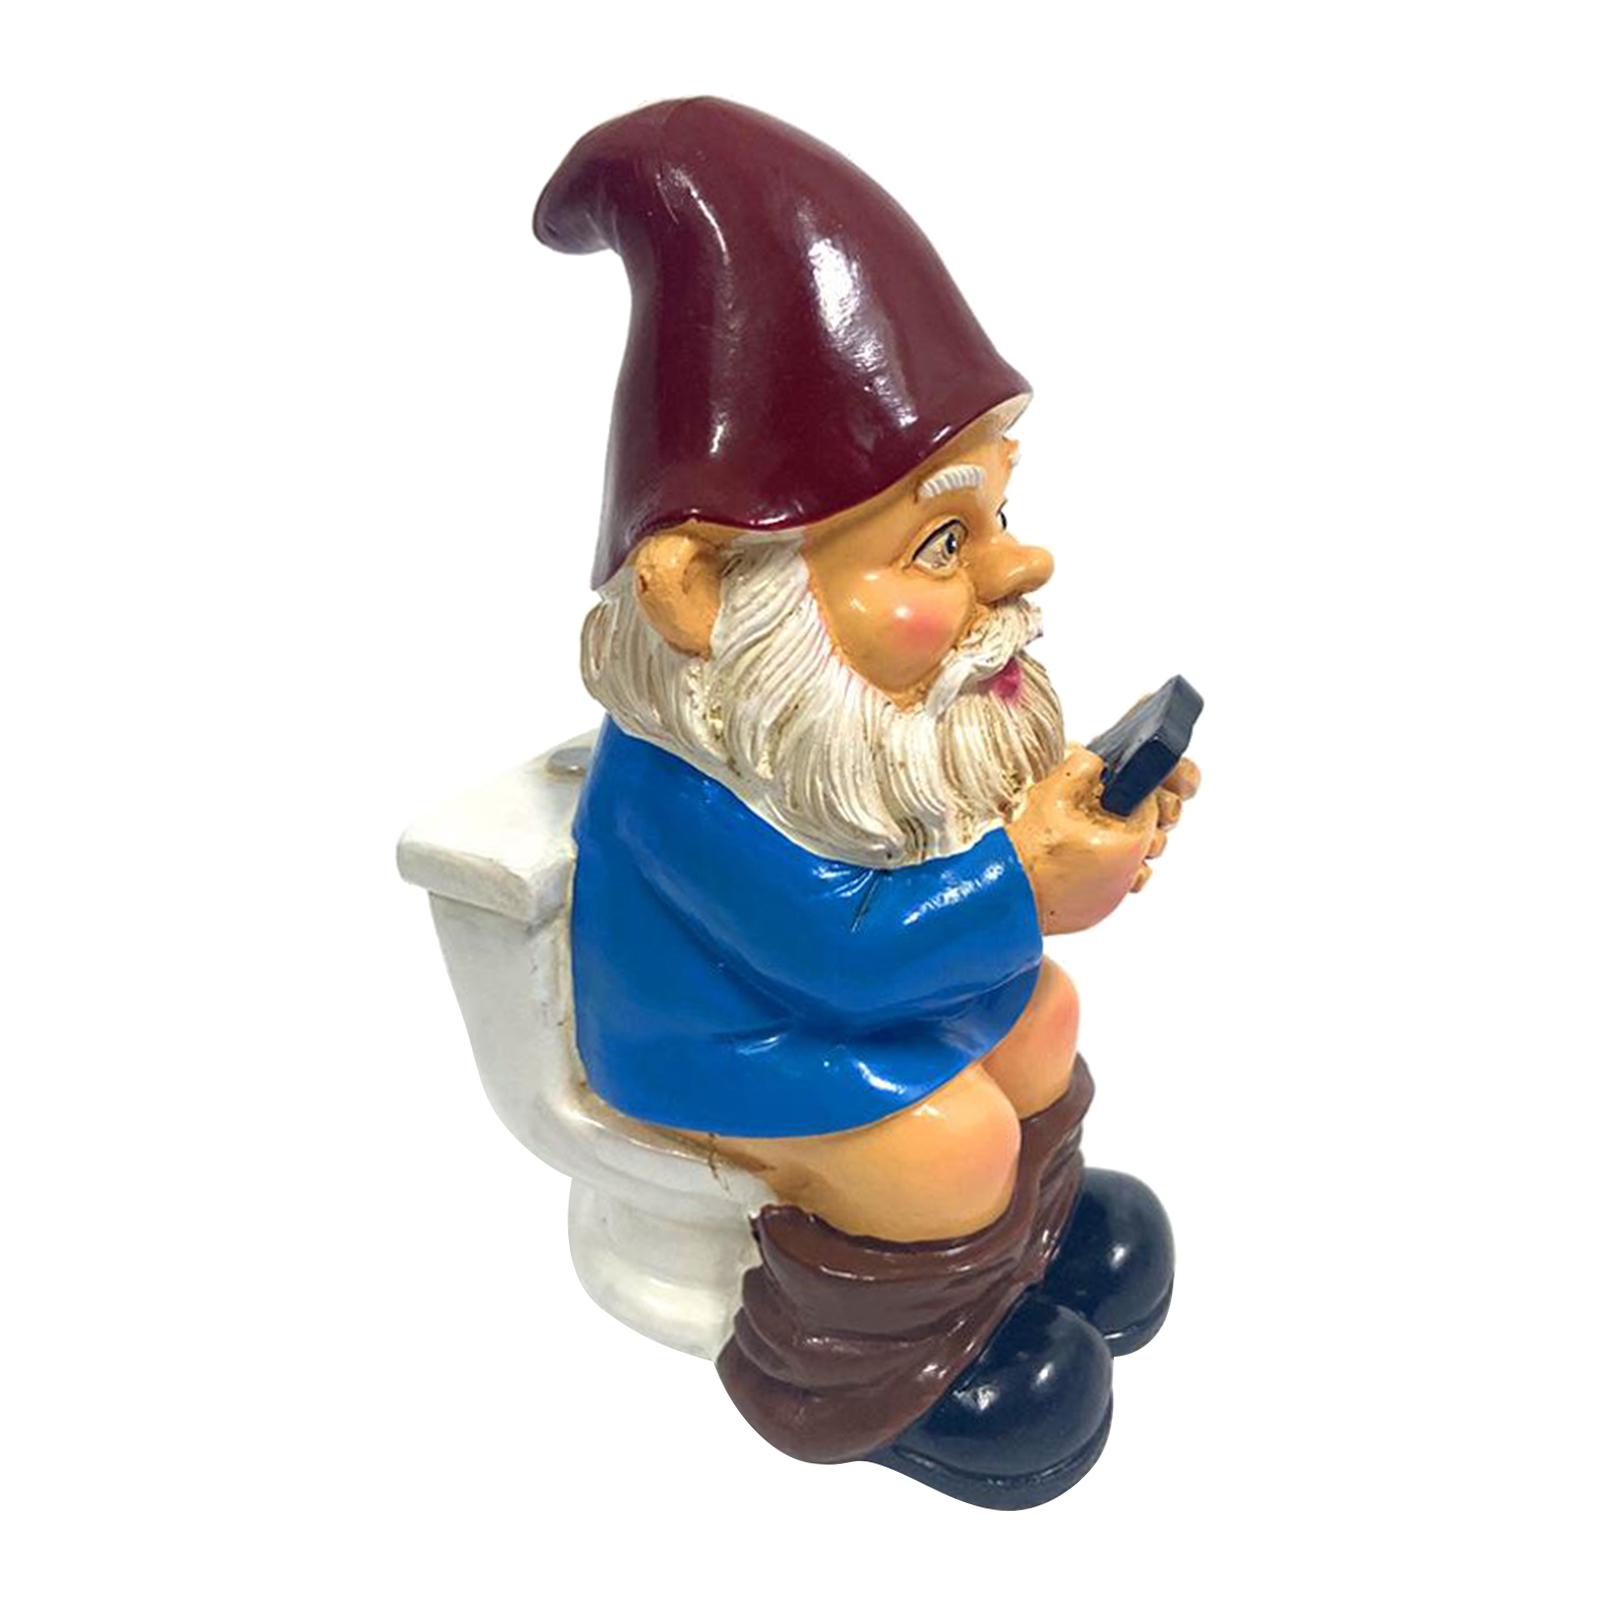 thumbnail 33 - Garden Gnome Statue Small Resin Lawn Gnome Scuplture Funny Indoor Outdoor Decor